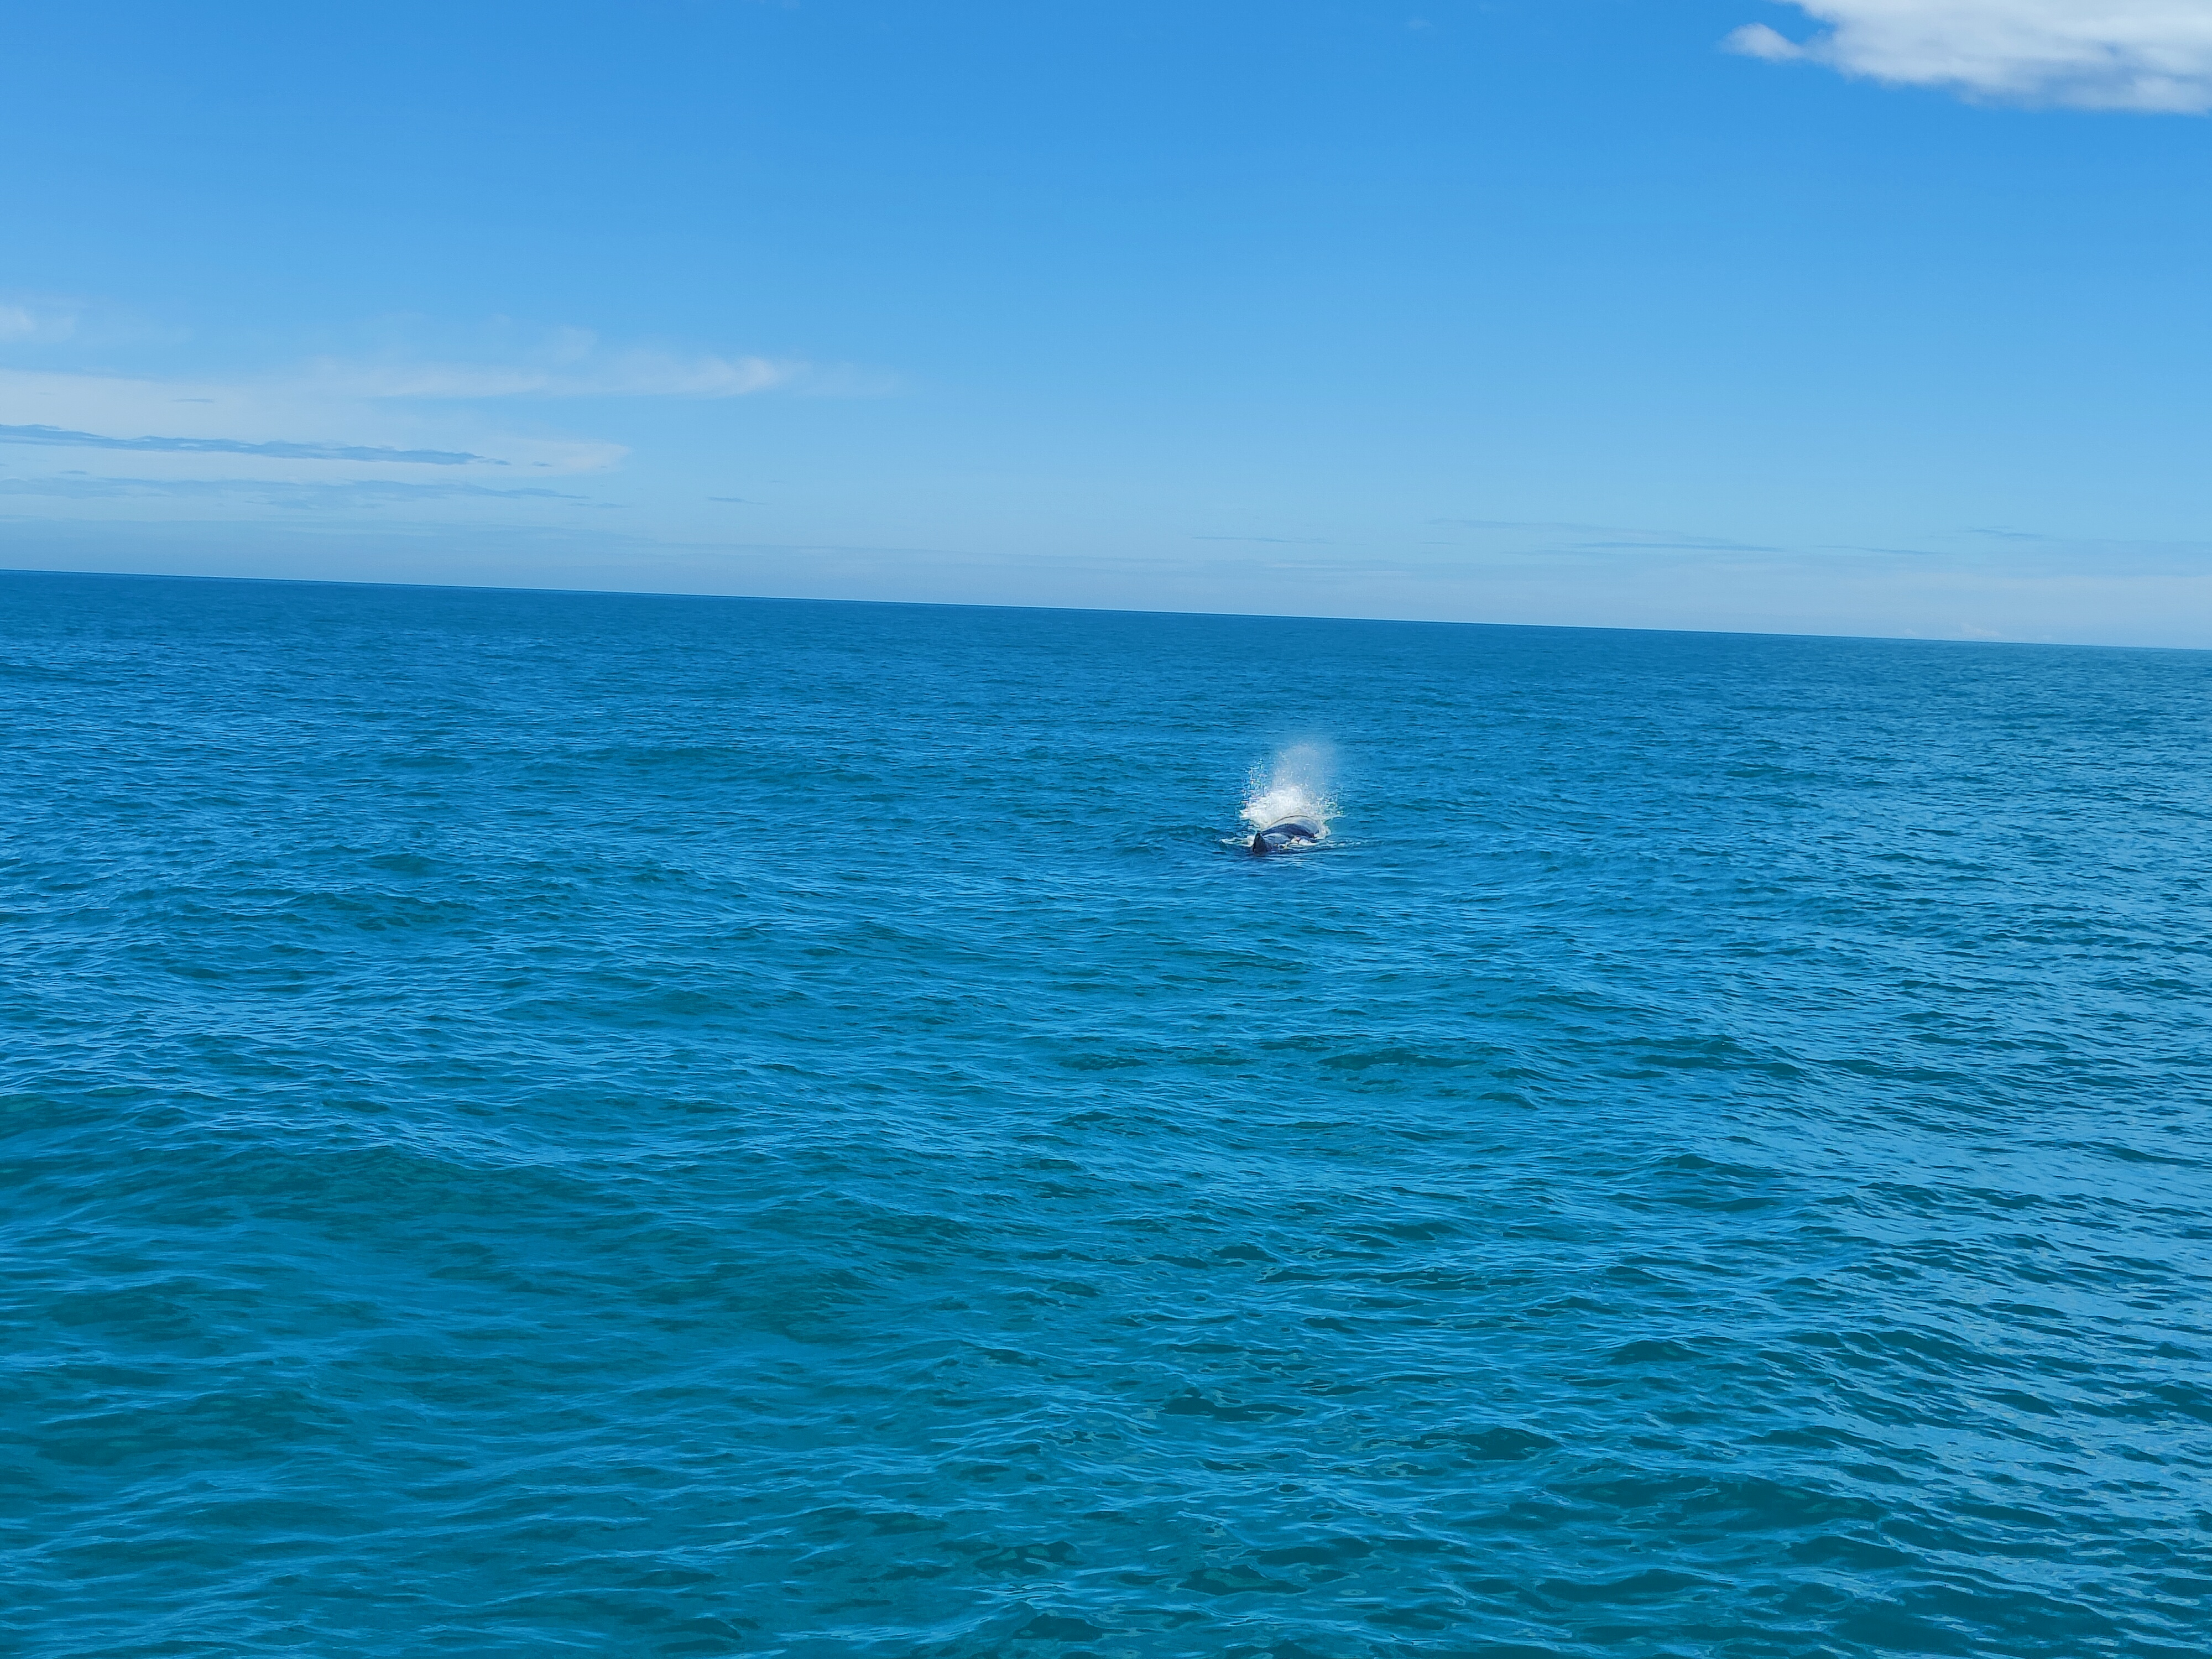 Our sperm whale taking a breather